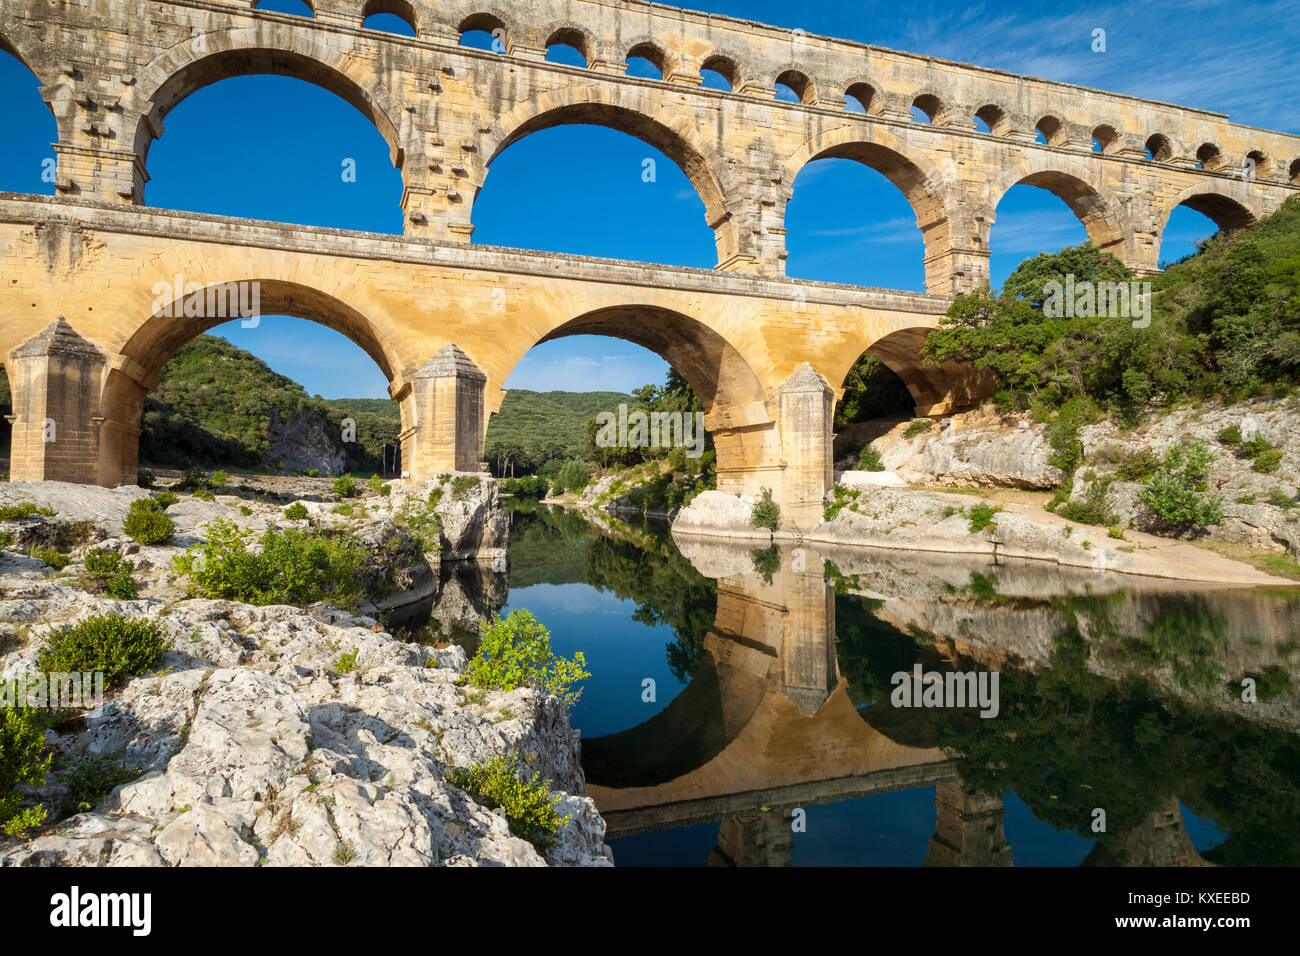 Roman bridge and aqueduct - Pont du Gard near Nimes, Occitanie (Languedoc-Roussillon), France - Stock Image